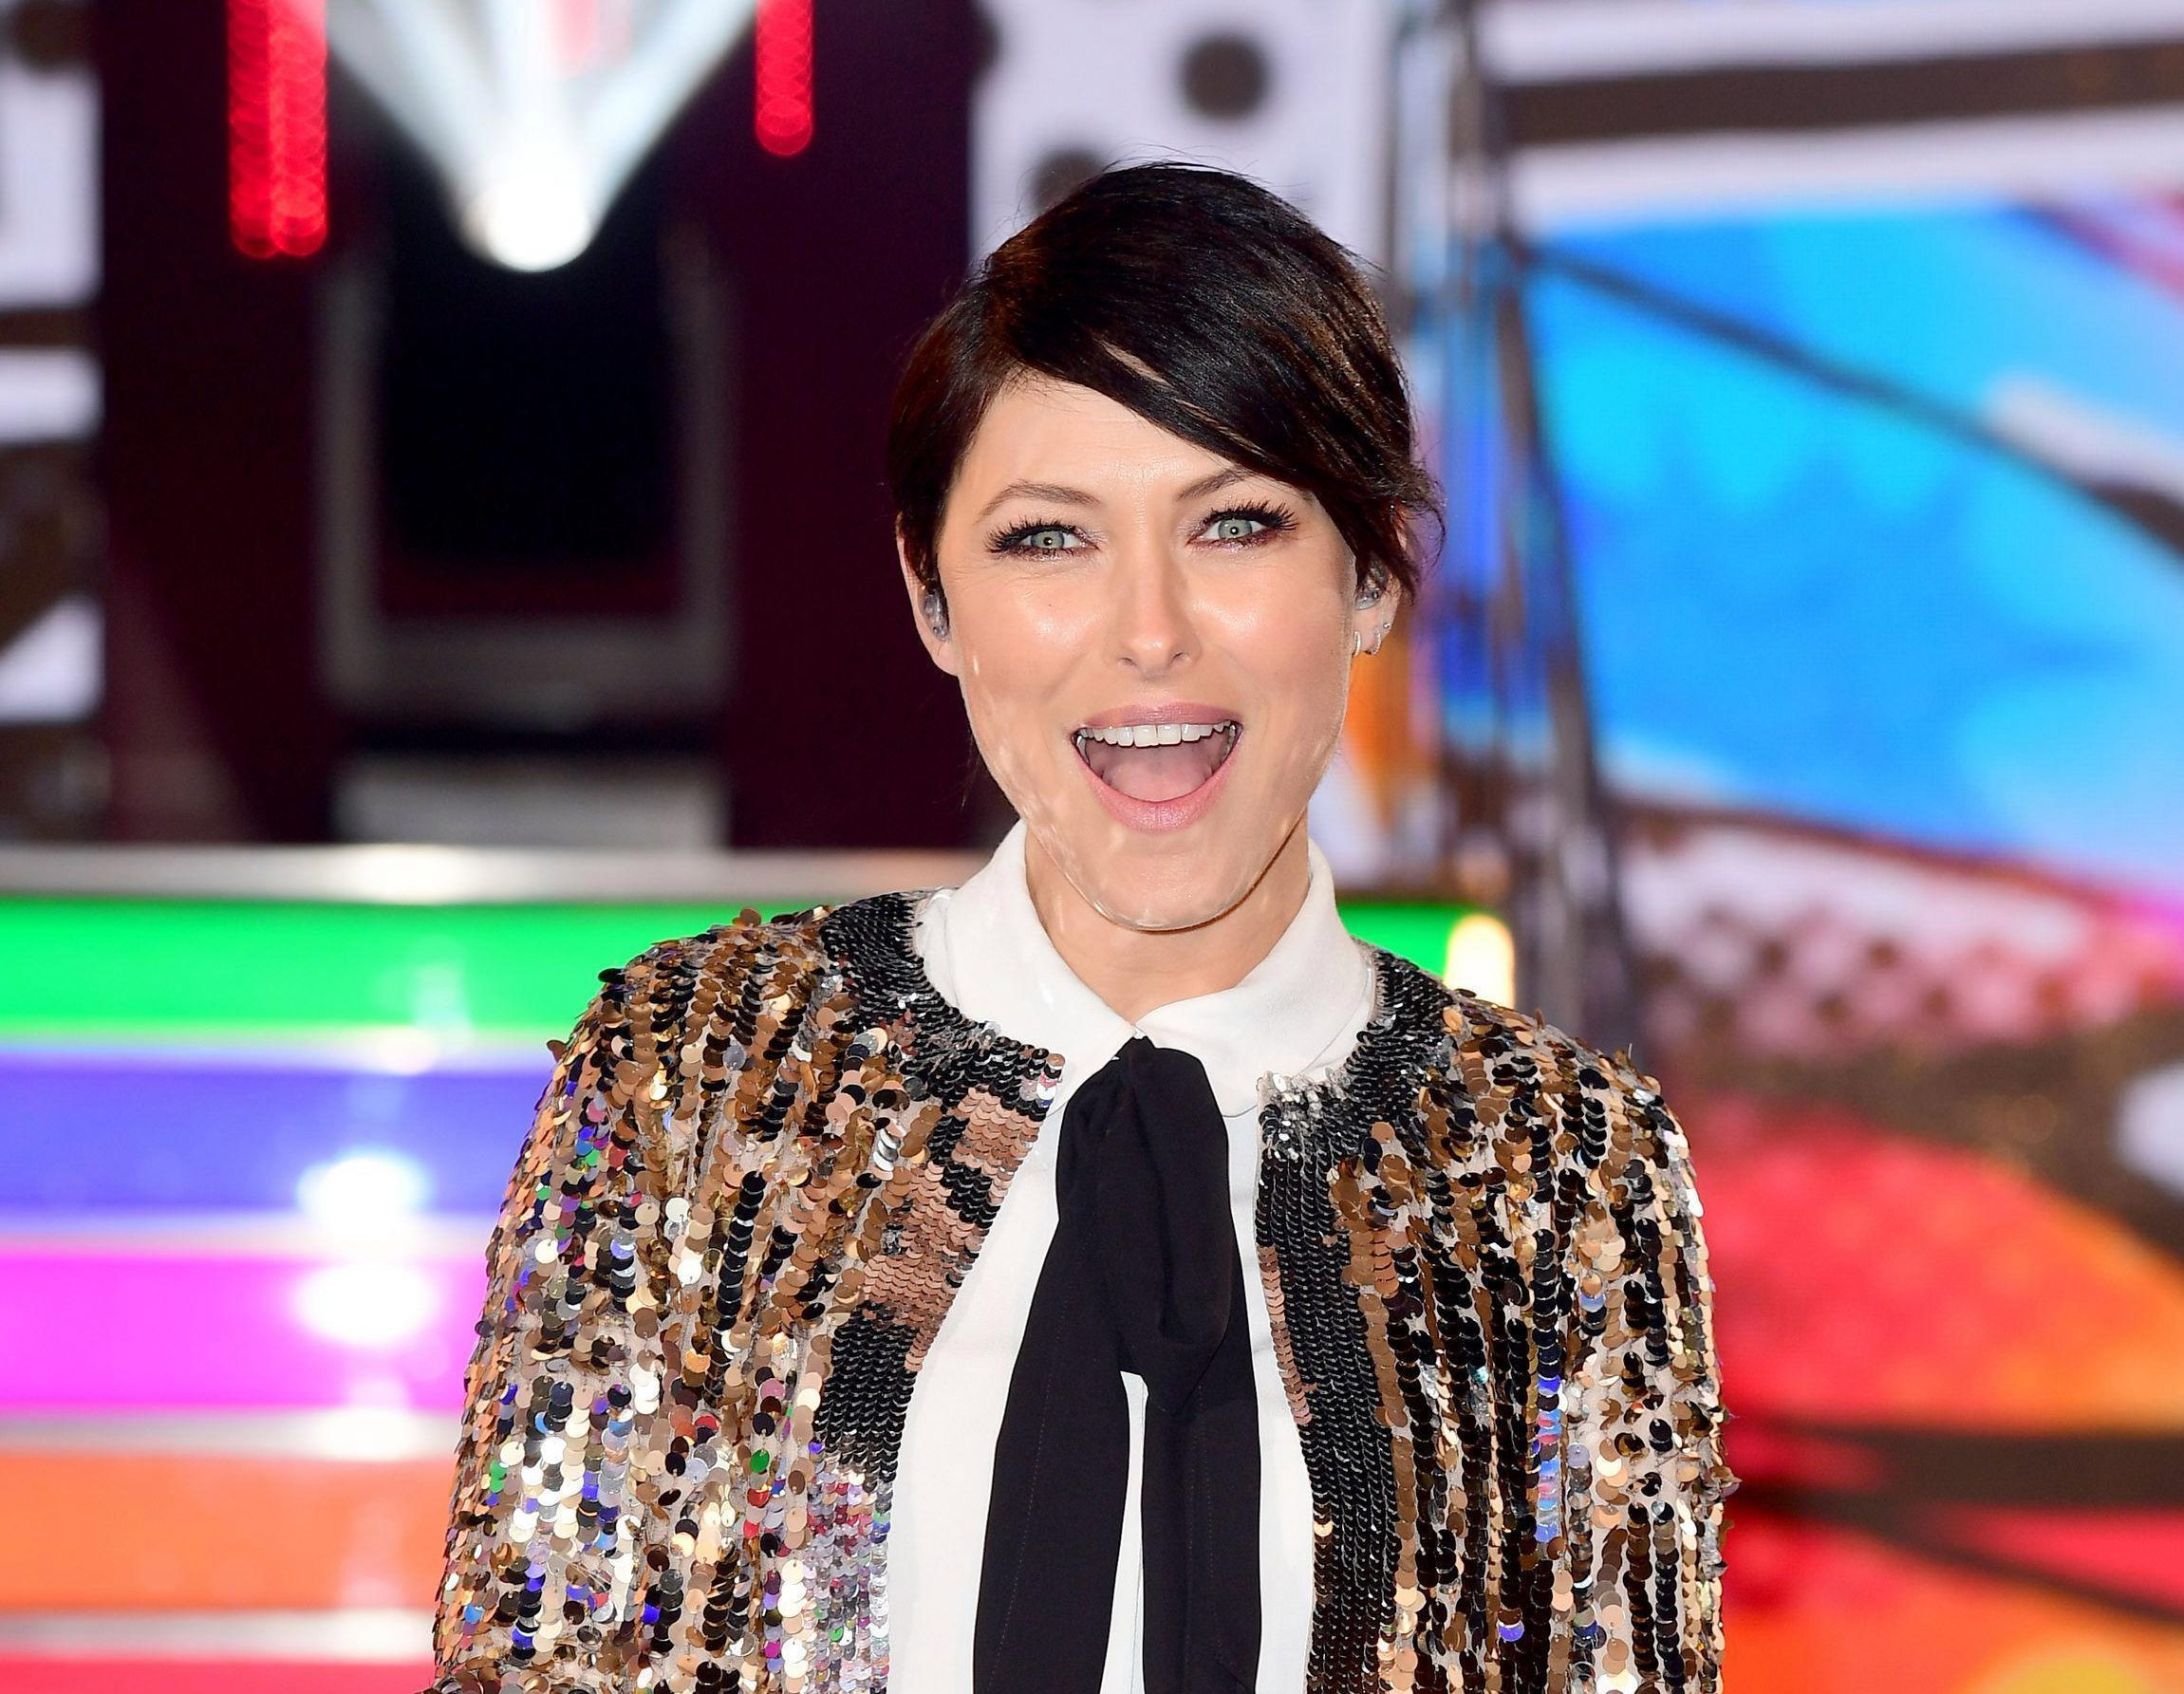 The Voice 2018 host Emma Willis – 5 fast facts about the Celebrity Big Brother presenter